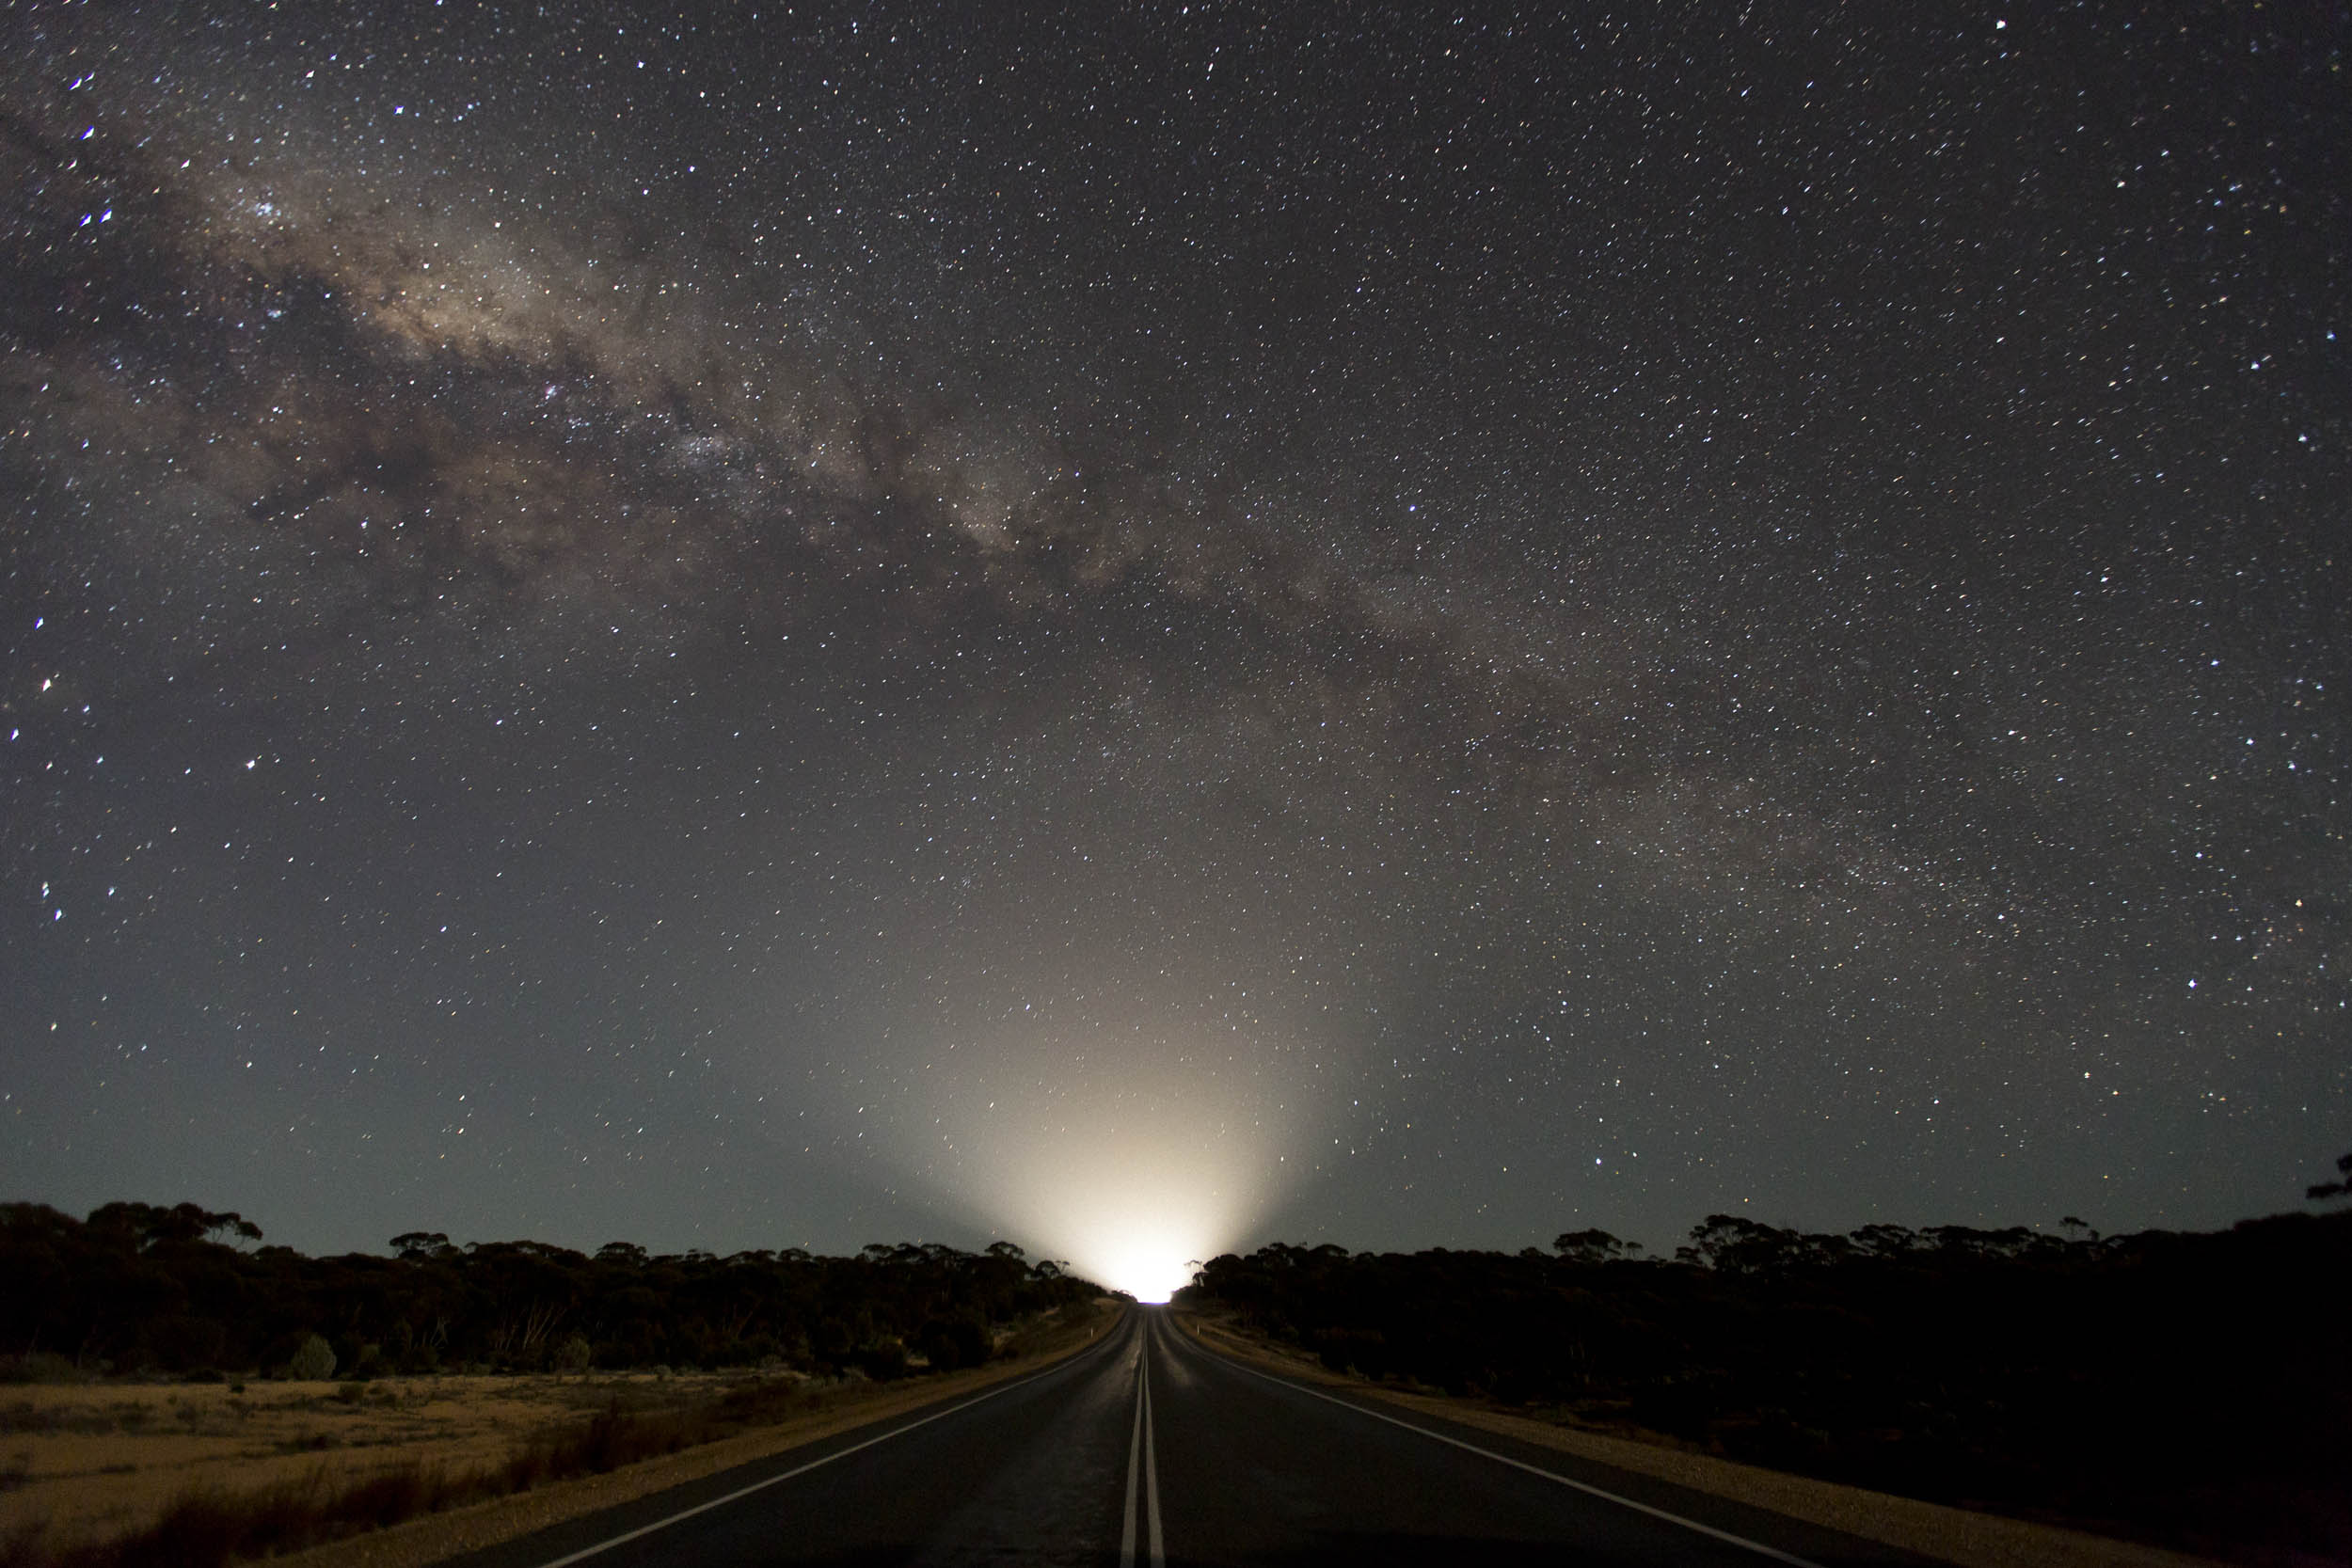 The night sky on the Nullarbor Plain near the Western Australian roadhouse of Balladonia.